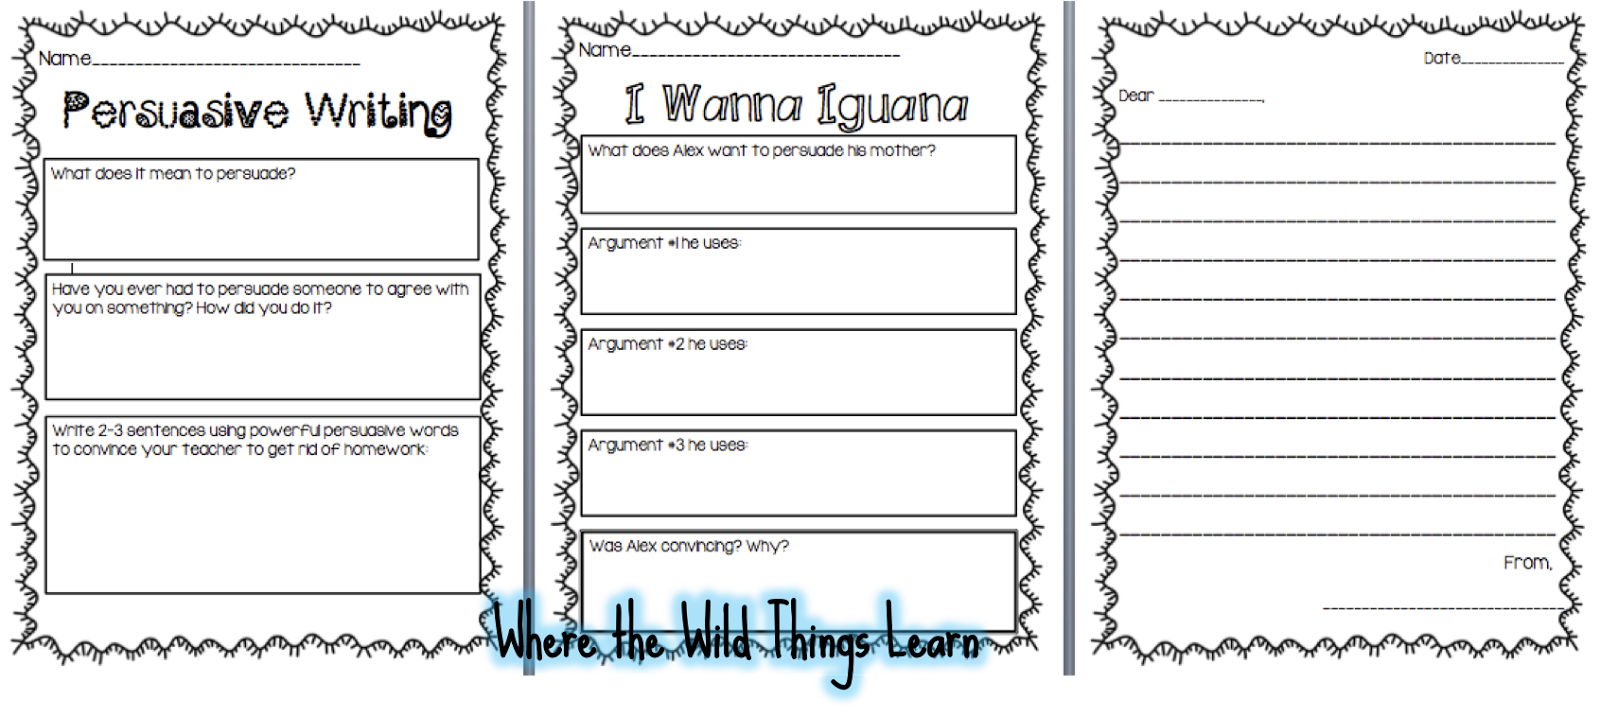 Persuasive writing worksheets grade 5